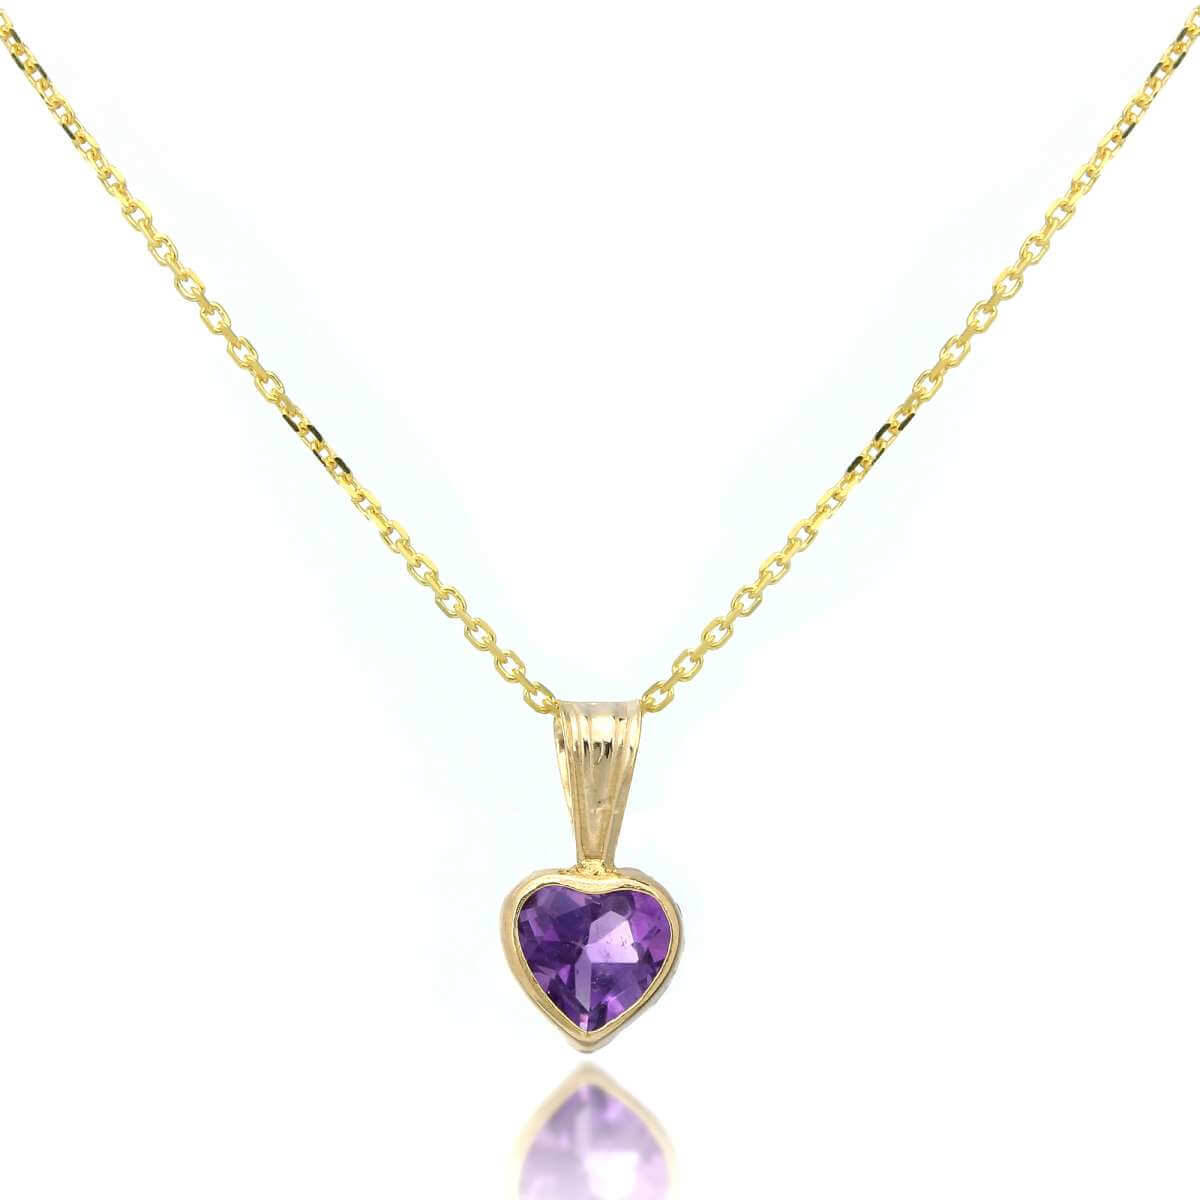 9ct Gold Gemstone Heart Pendant Amethyst